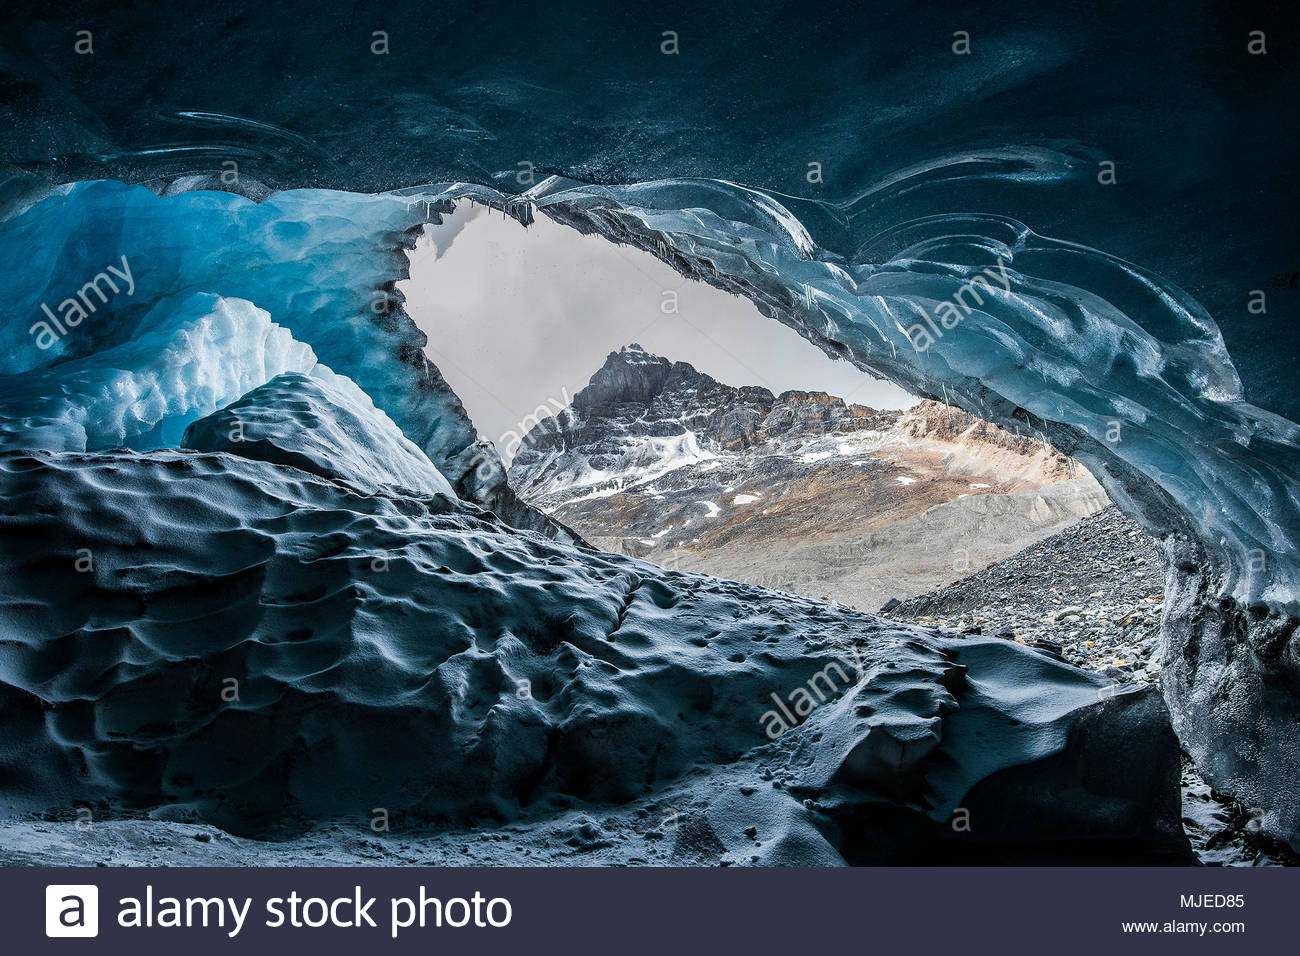 View from an ice cave under a glacier - Stock Image